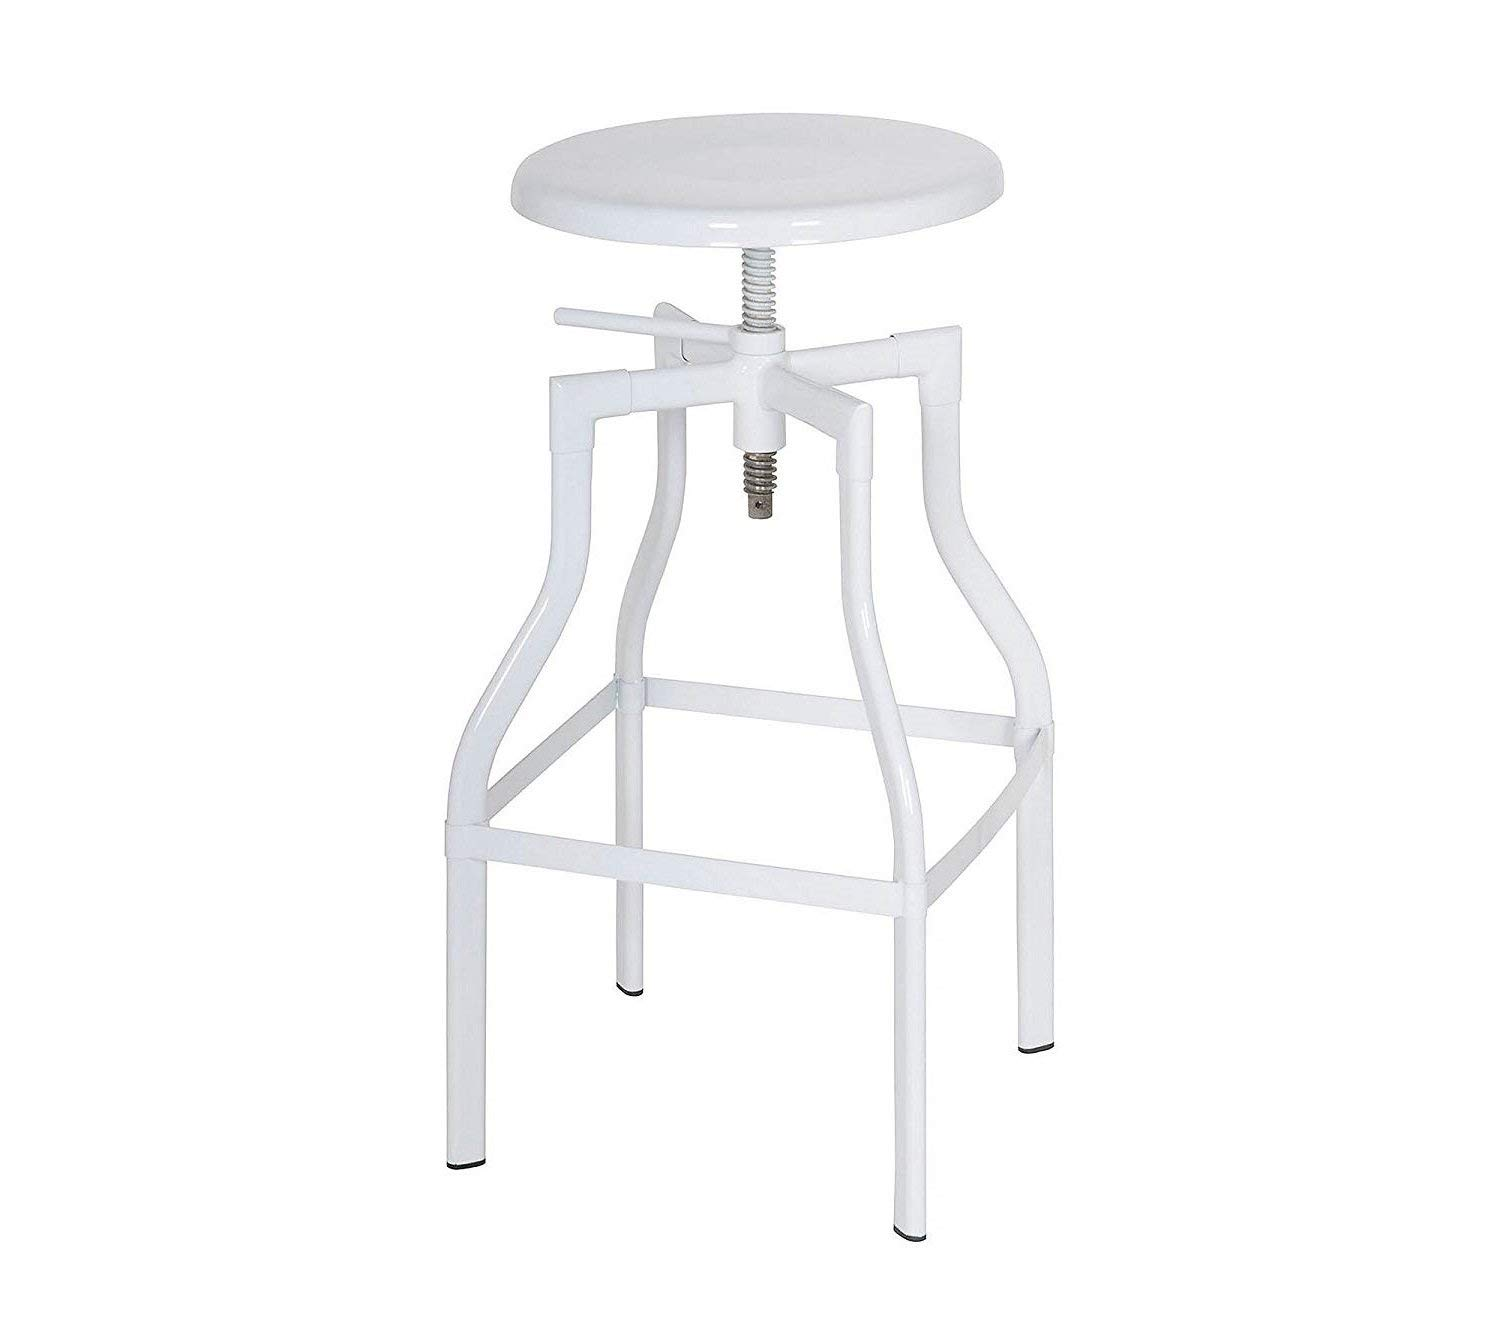 "Major-Q 24""-30"" Adjustable Seat Height Set of 2 Modern Contemporary Design Adjustable Swivel Counter Height Bar Chair Stool with White Finish (8096636)"